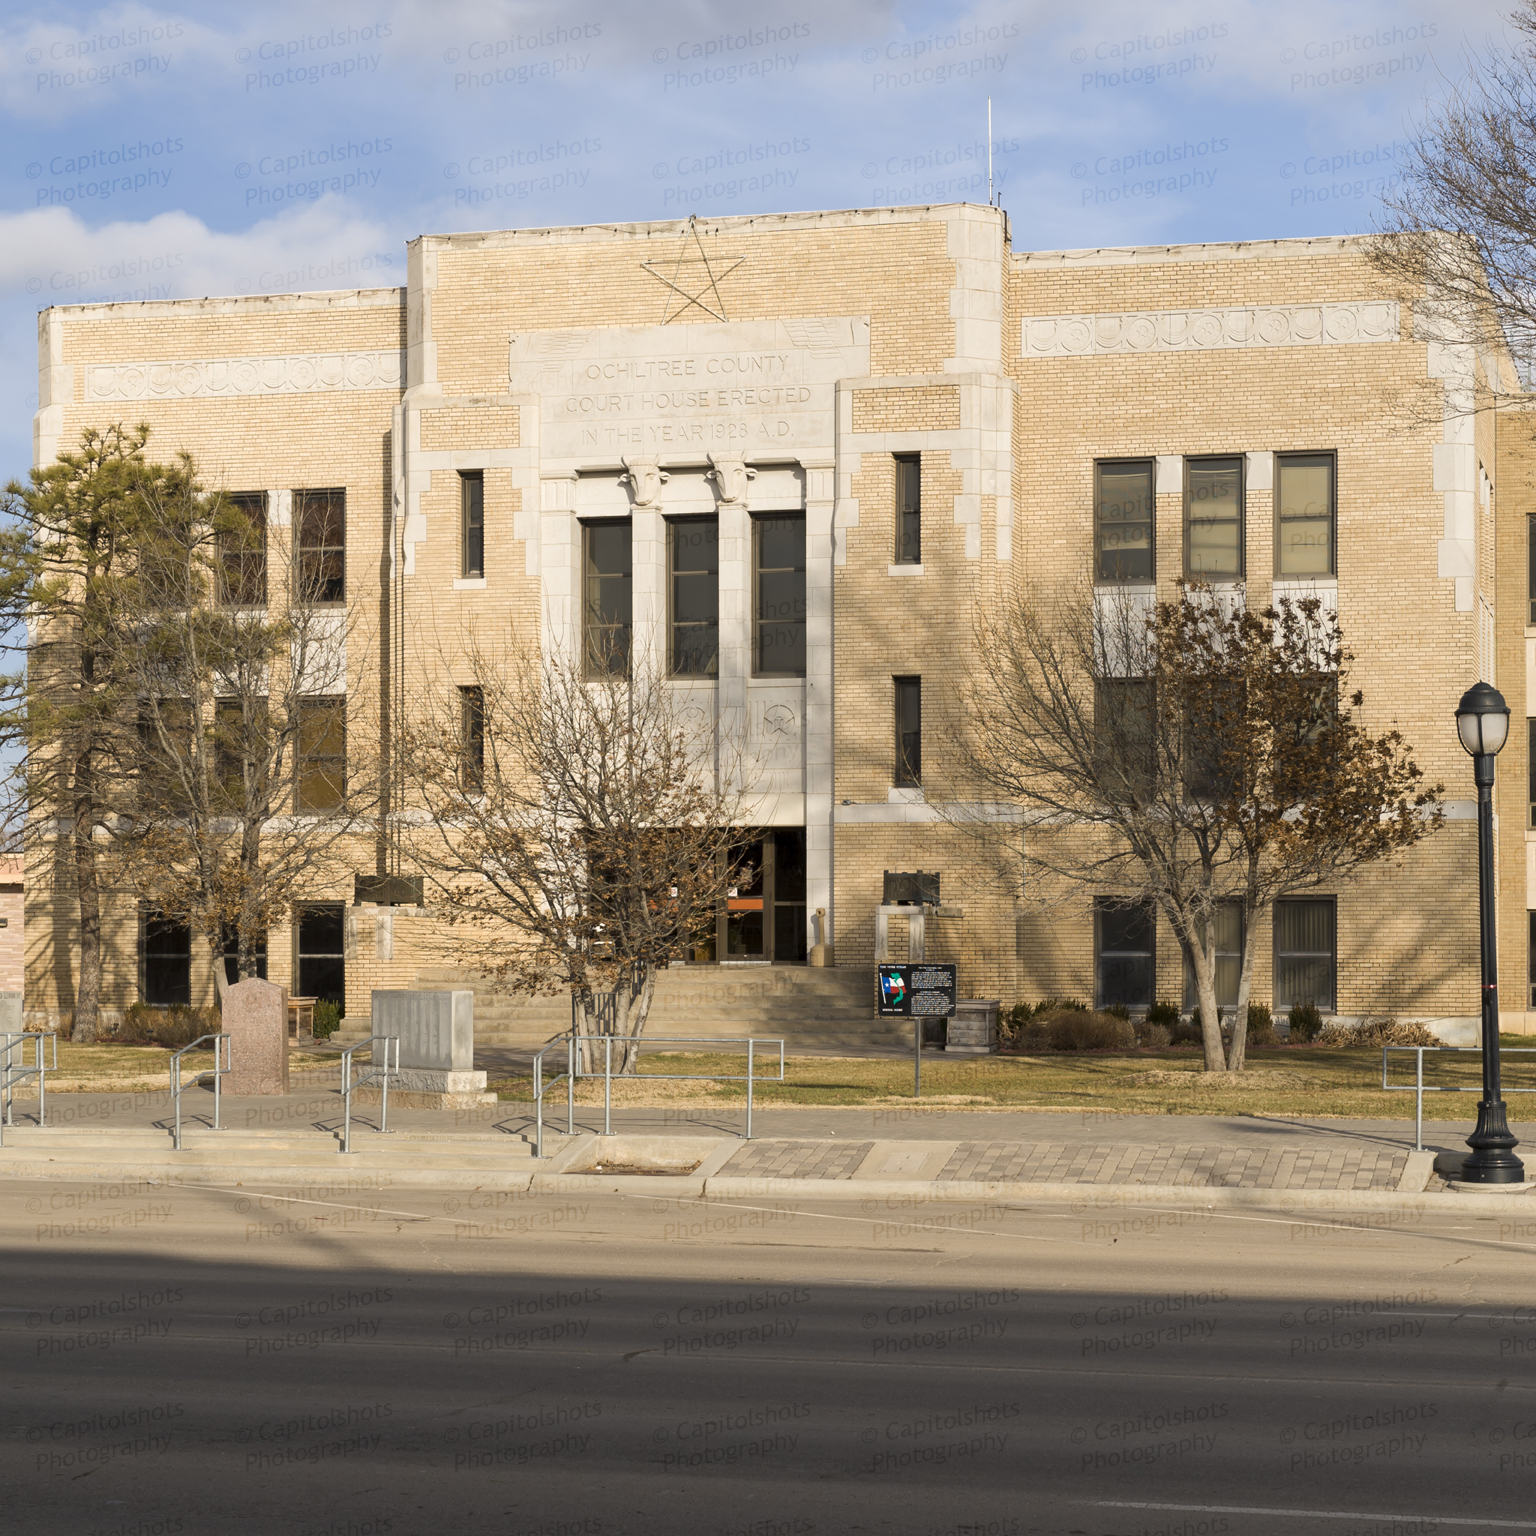 ochiltree county Find ochiltree county texas libraries, such as state, town, city, public, private, college and university library branches libraries provide information on applications, borrowing books, ebooks, library programs, online databases and research.